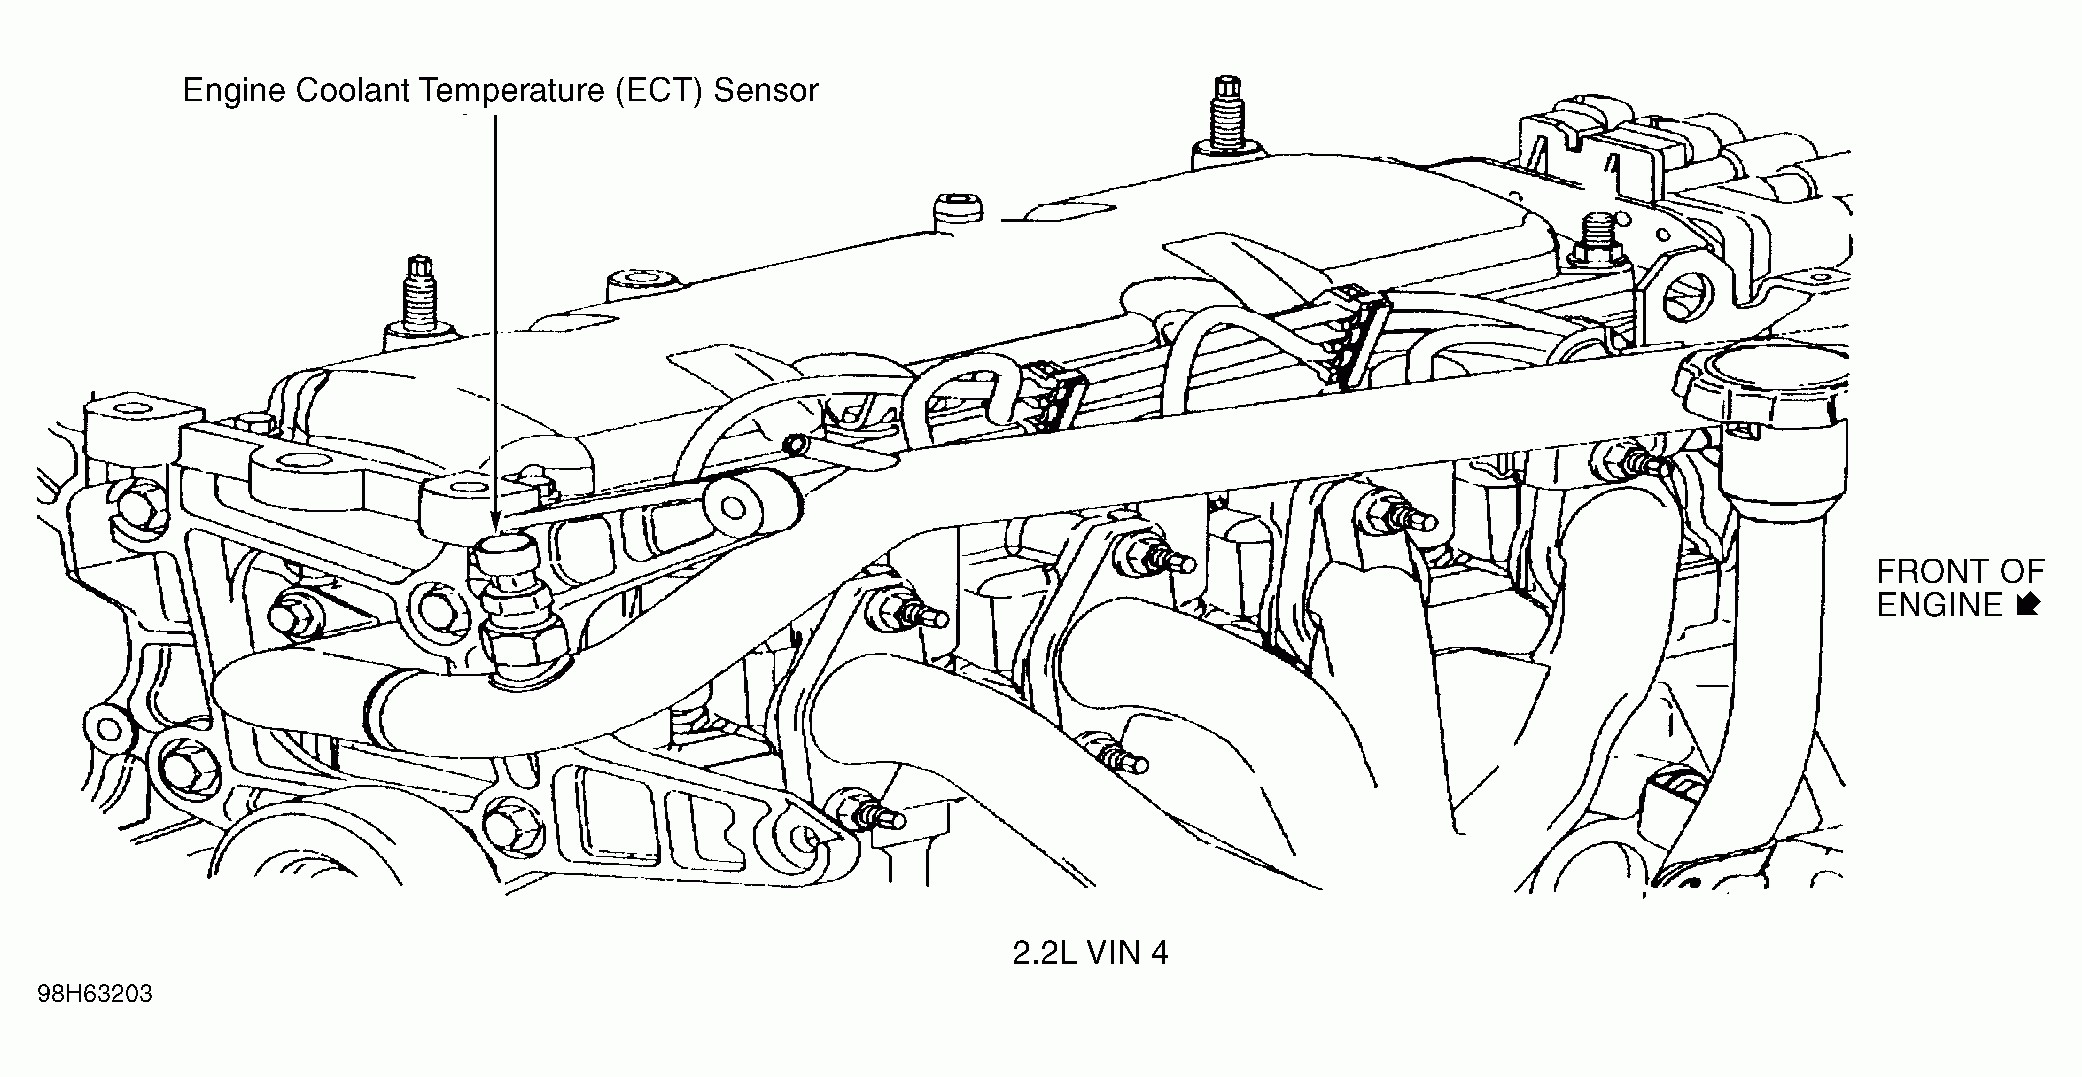 5915a5 2004 chevy cavalier engine diagram 2002 chevrolet cavalier ... |  wiring library  wiring library